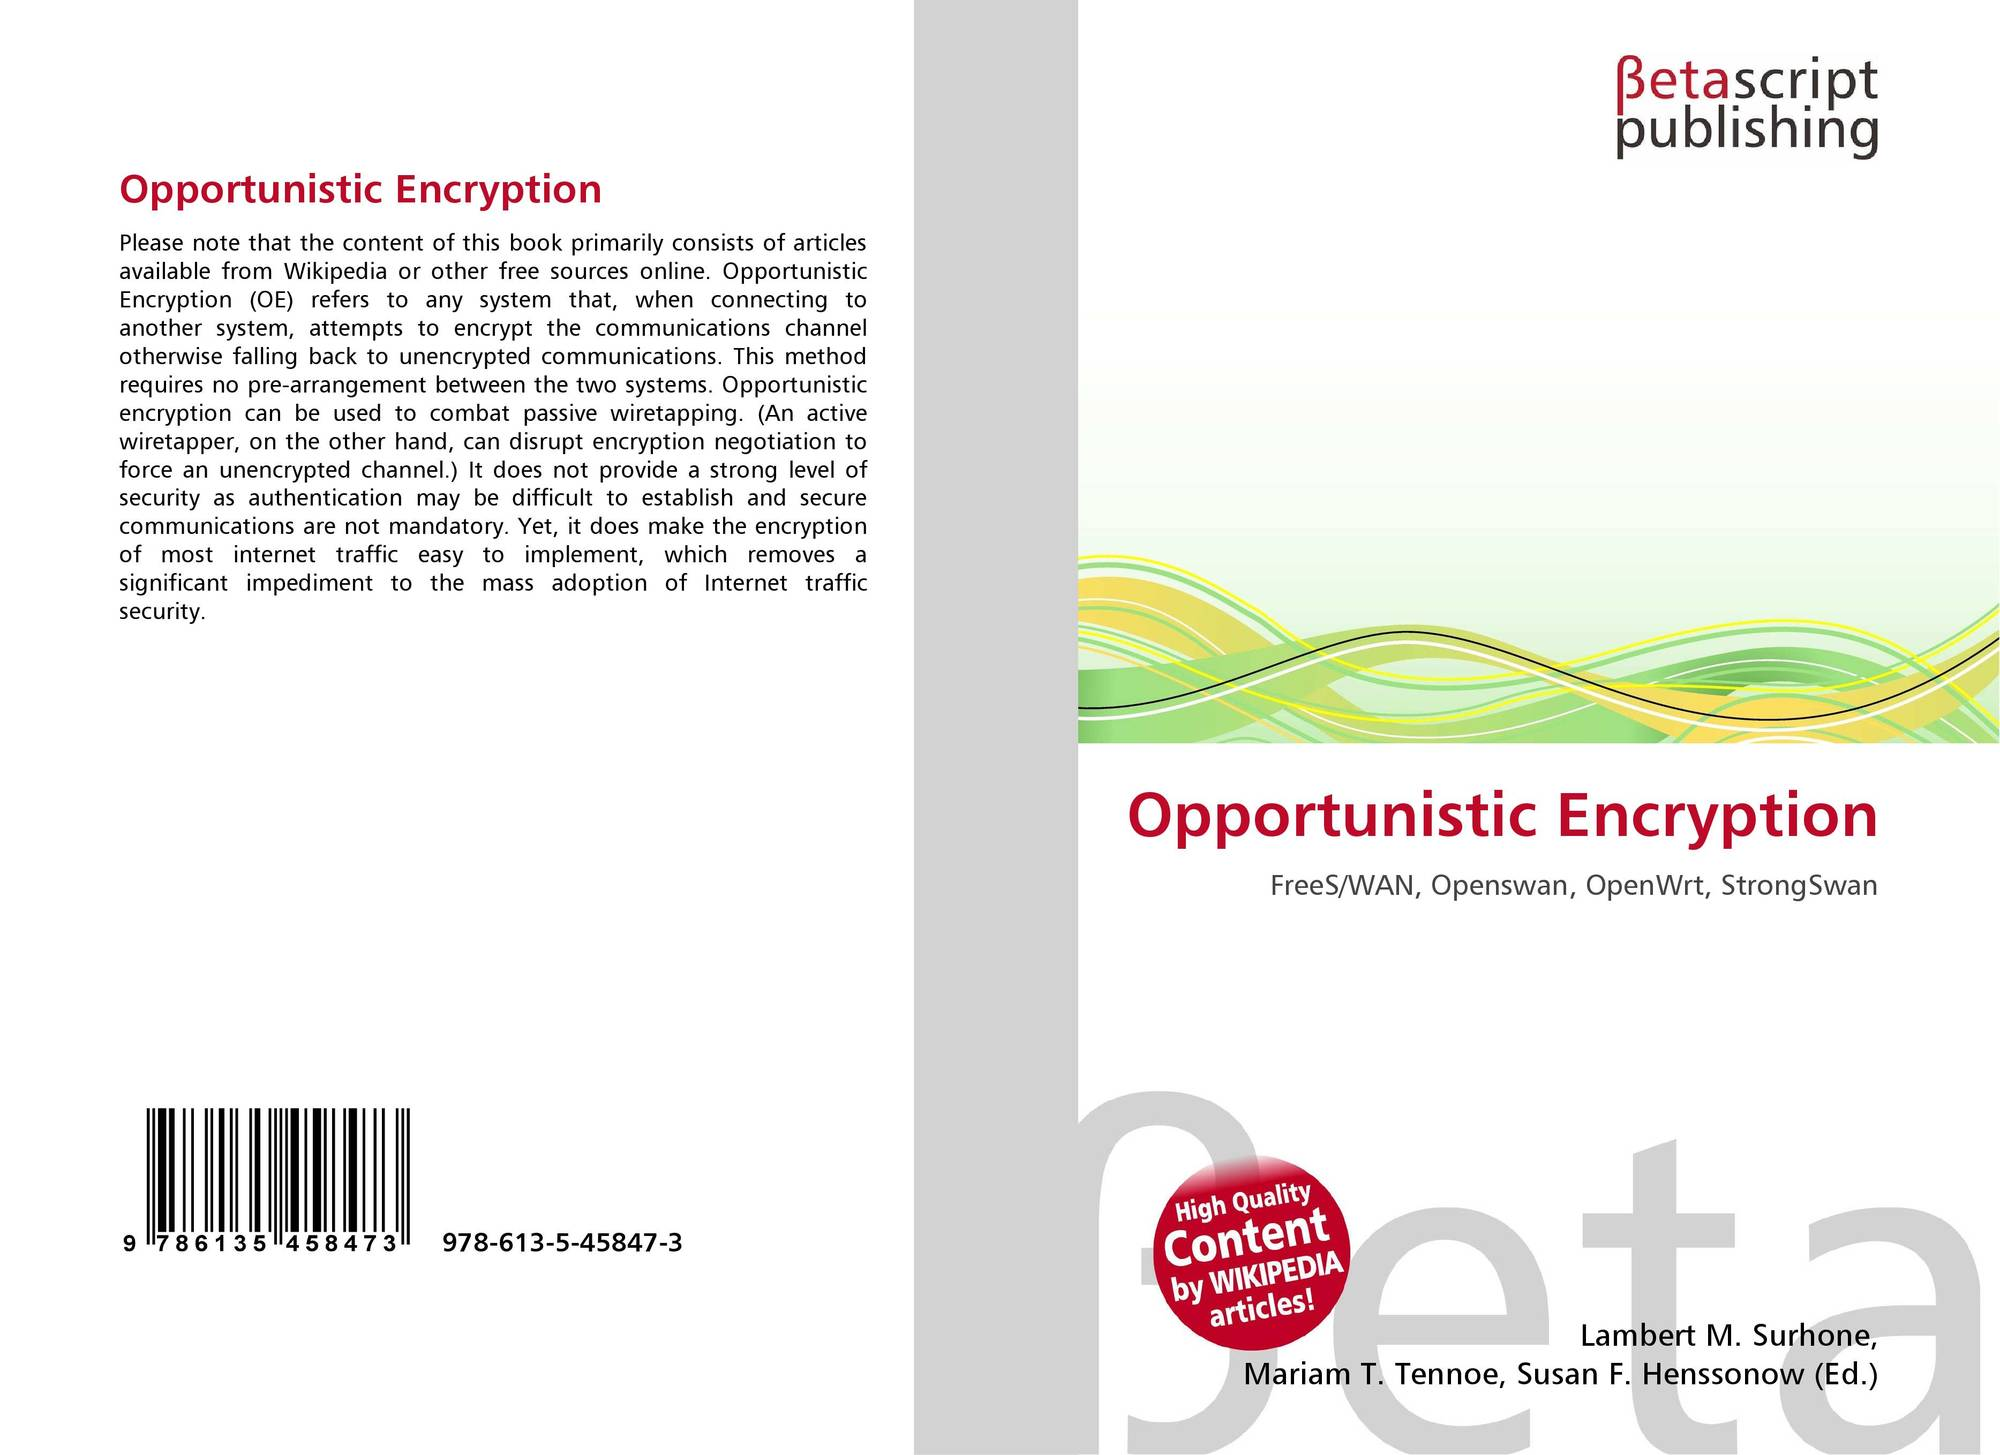 bookcover of opportunistic encryption